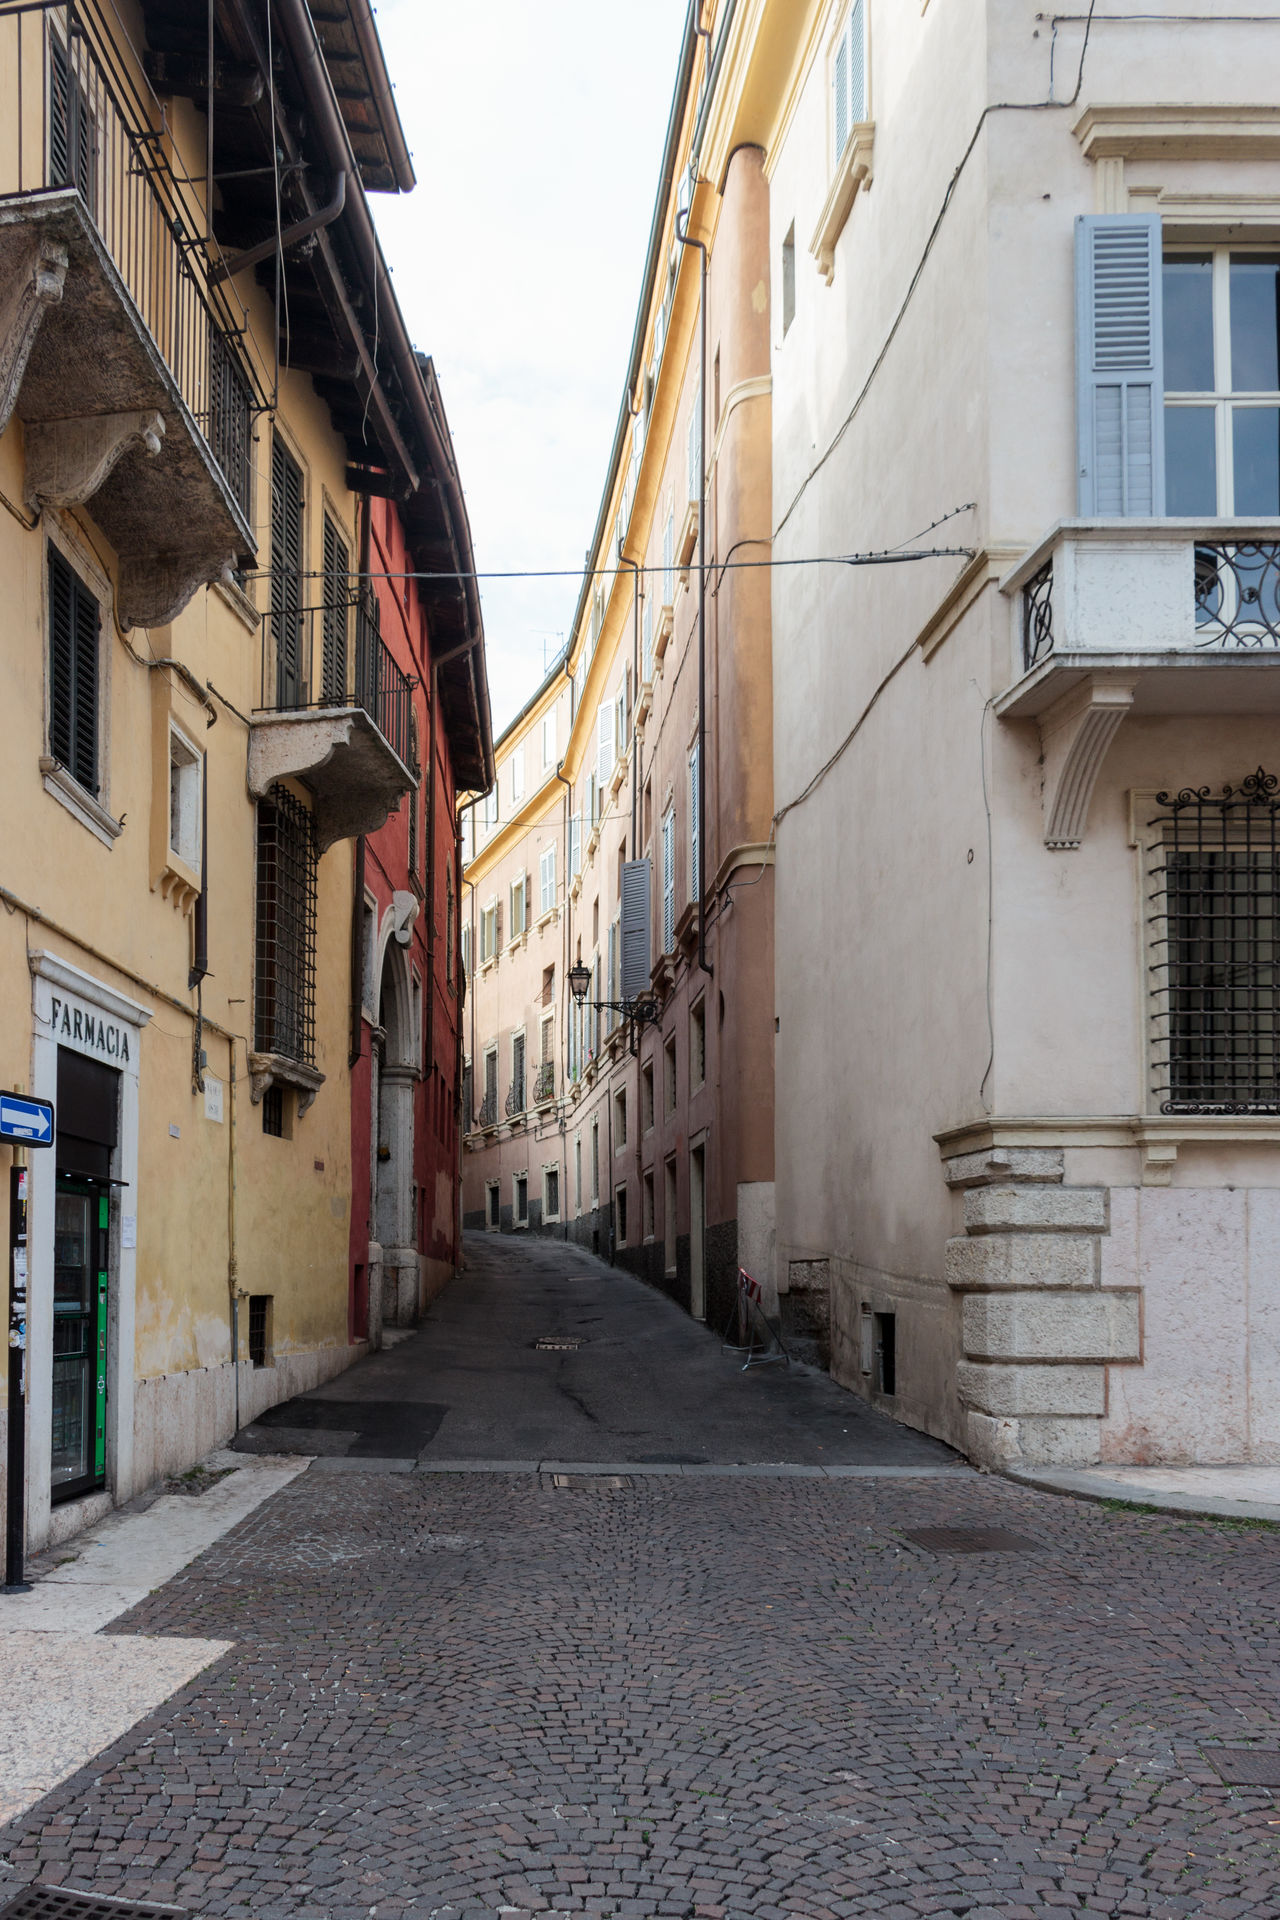 Verona, Italy - September 27, 2015 : Quiet streets of the old city of Verona. Vicolo Osite street corner in Verona, Italy Architecture Architecture Art Building City Culture Day Europe Famous History House Italy Landmark Old Outdoors People Square Street Tourism Town Travel Urban Verona View Walking